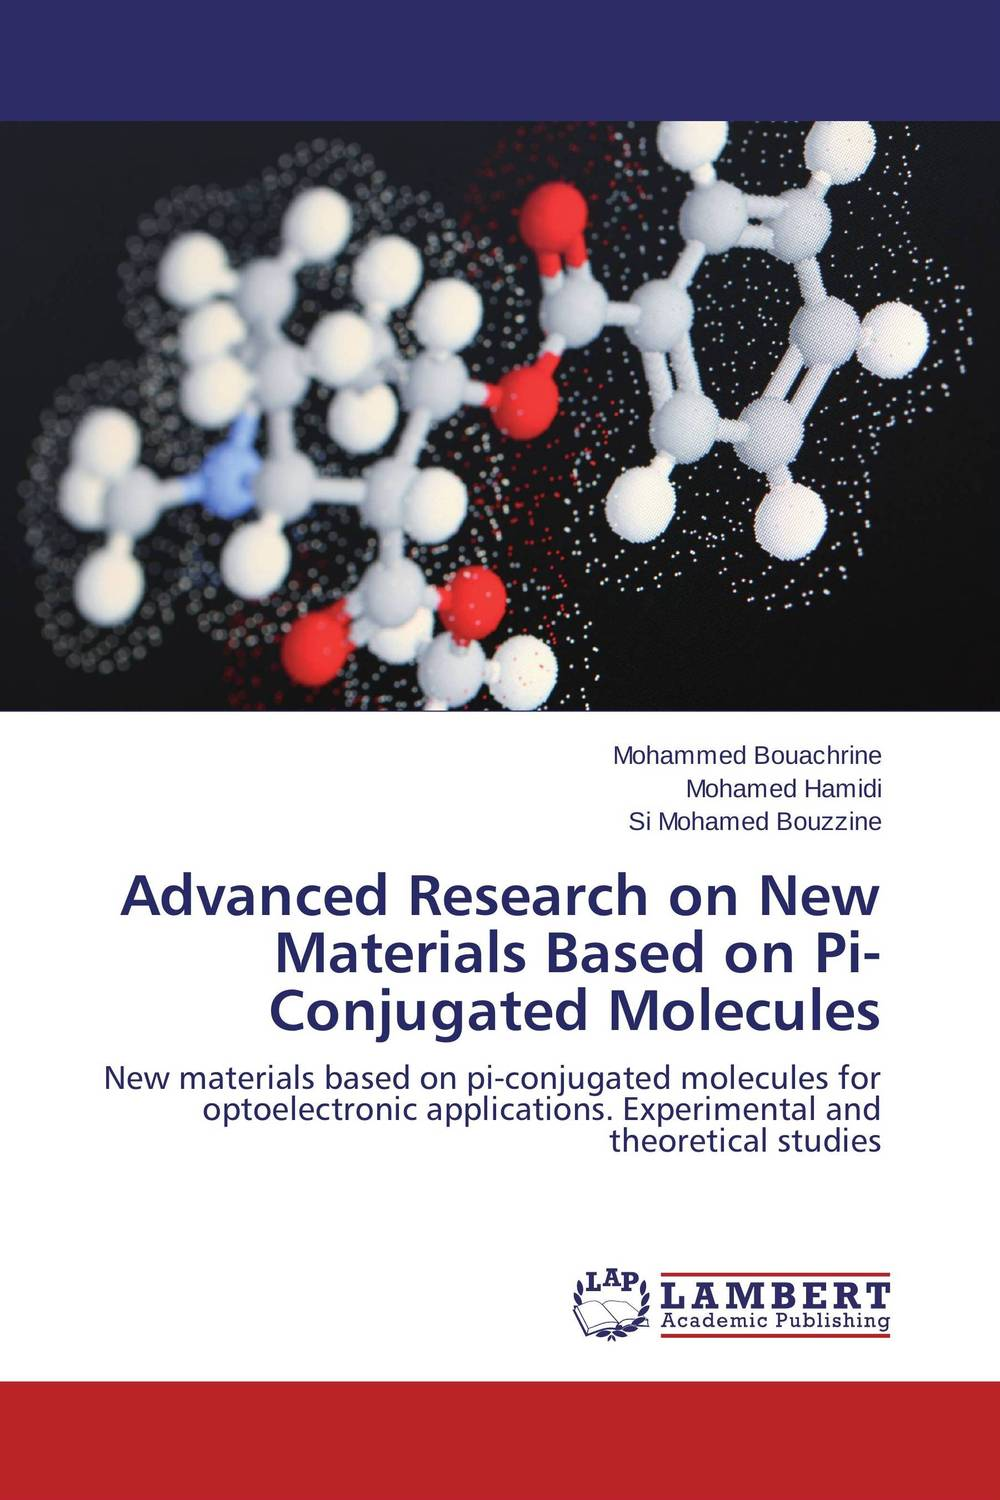 Advanced Research on New Materials Based on Pi-Conjugated Molecules